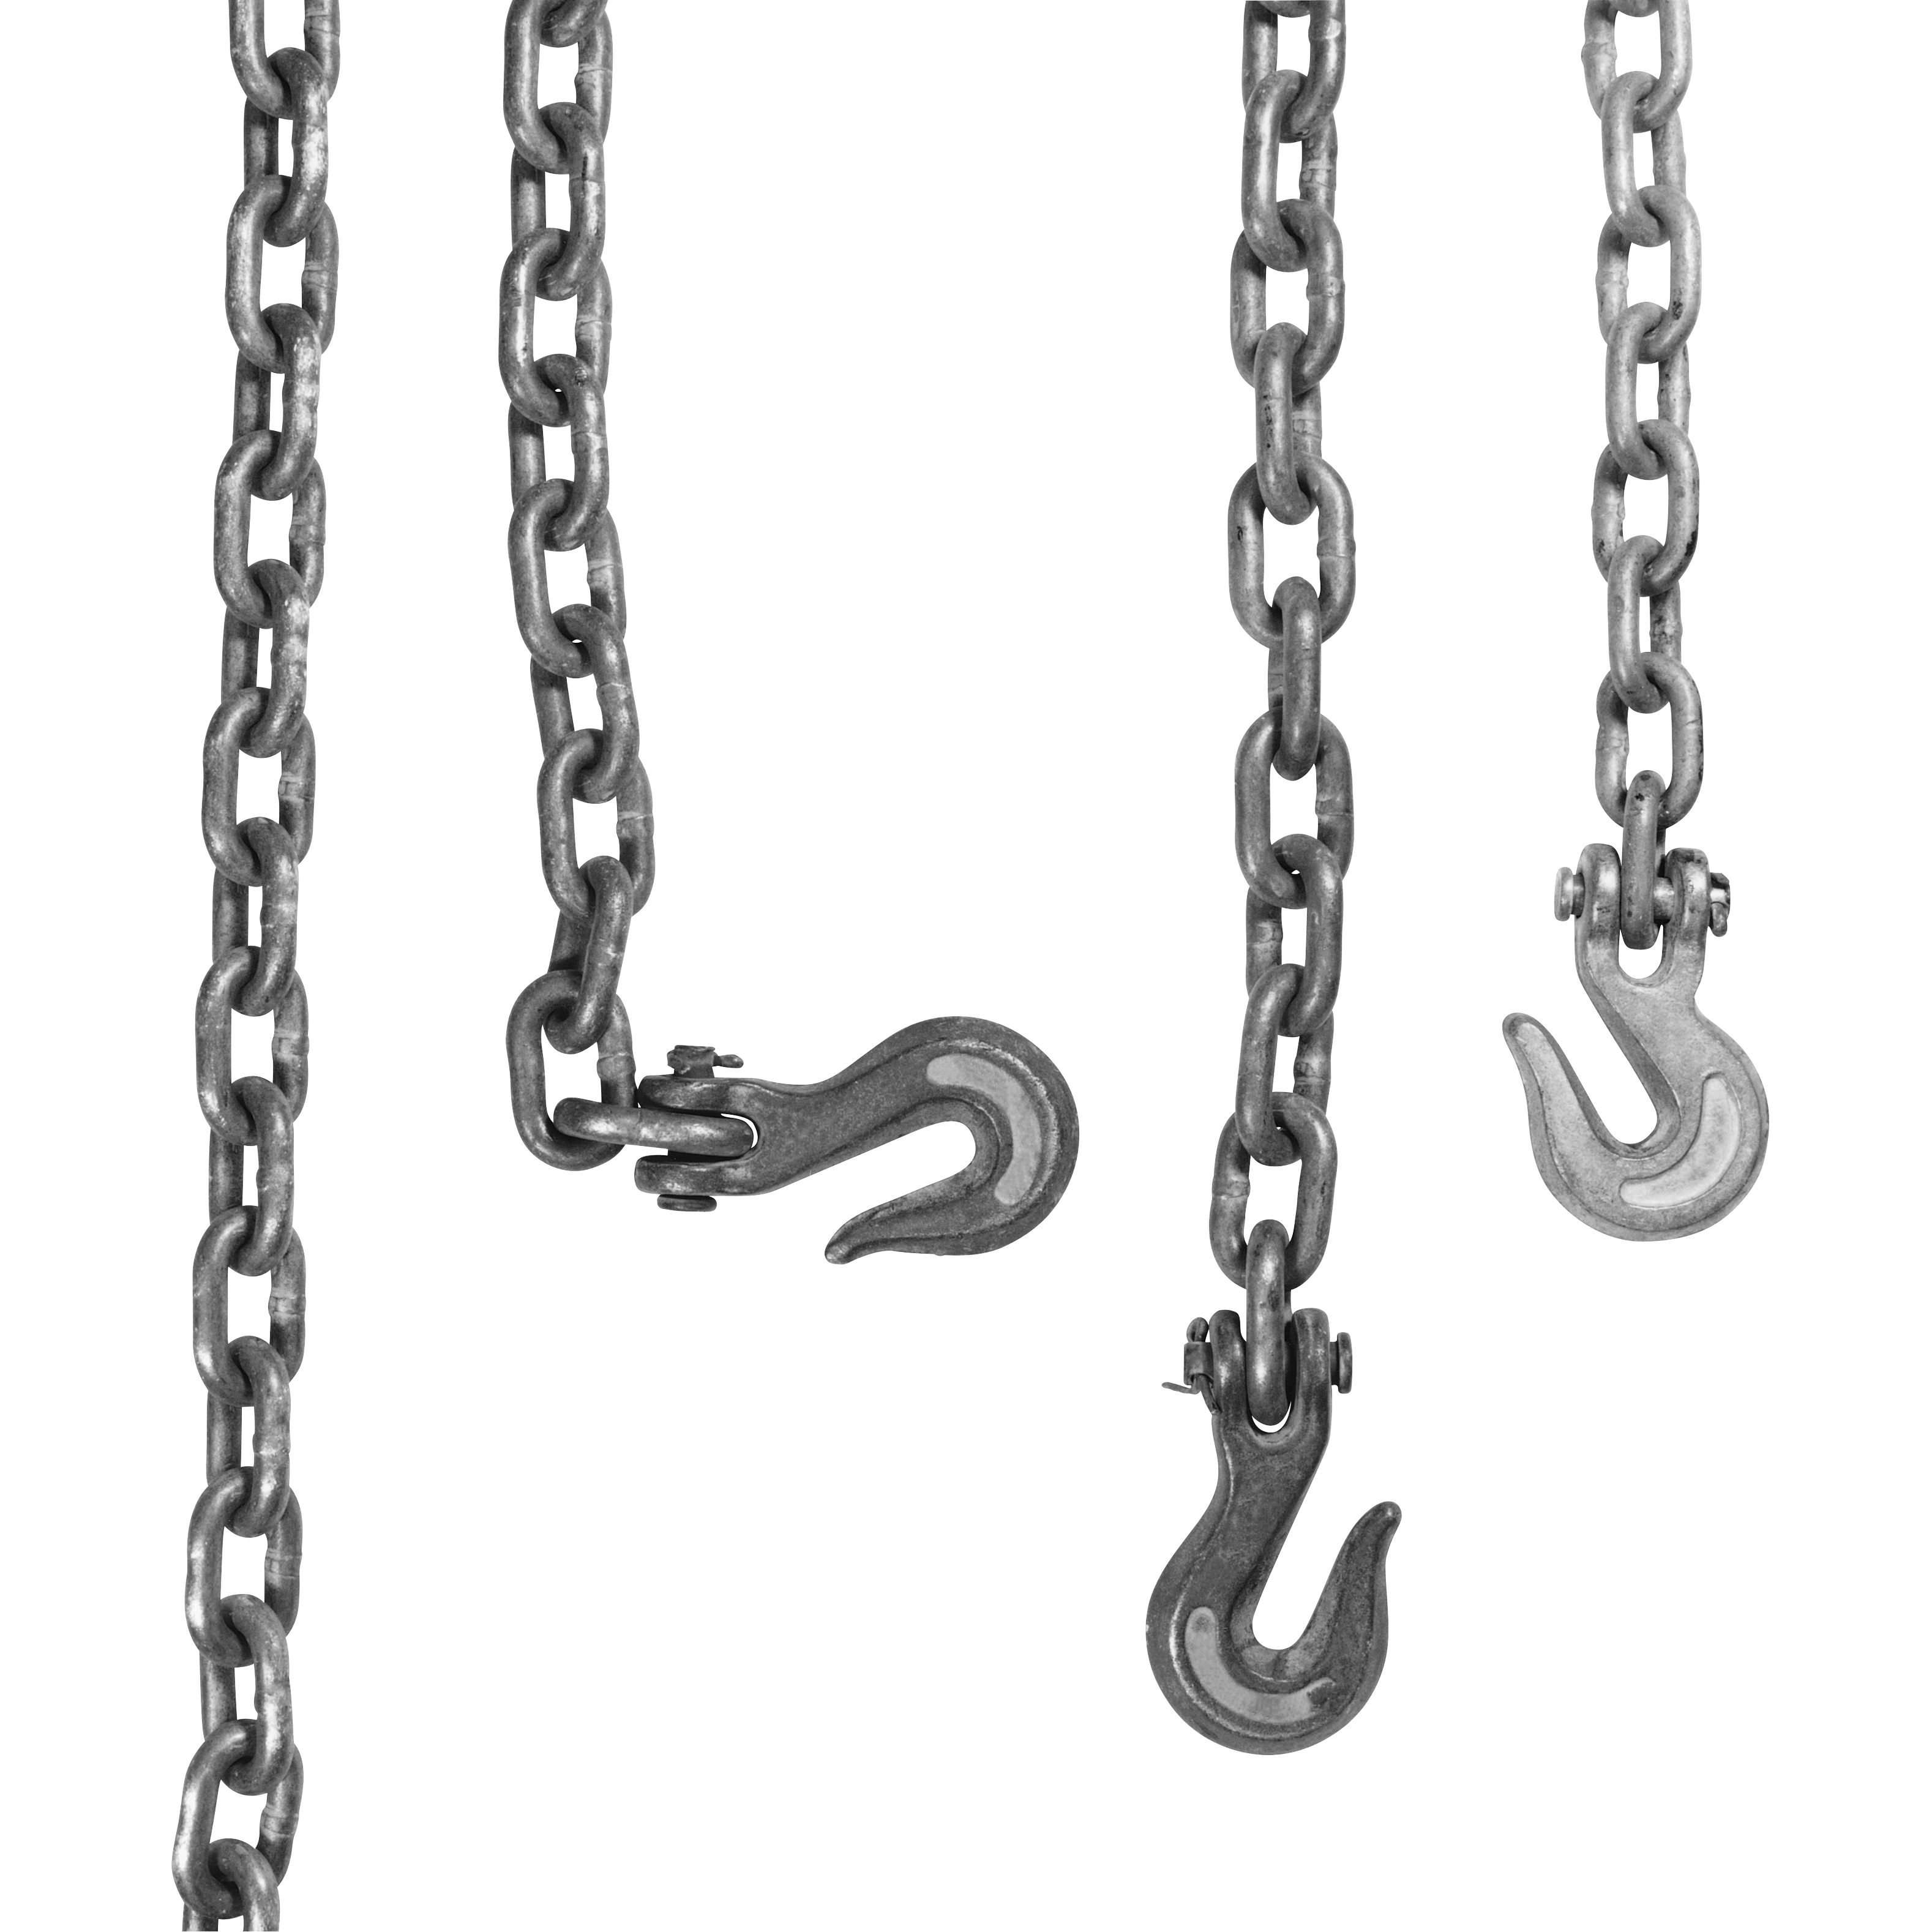 Chains by celairen.